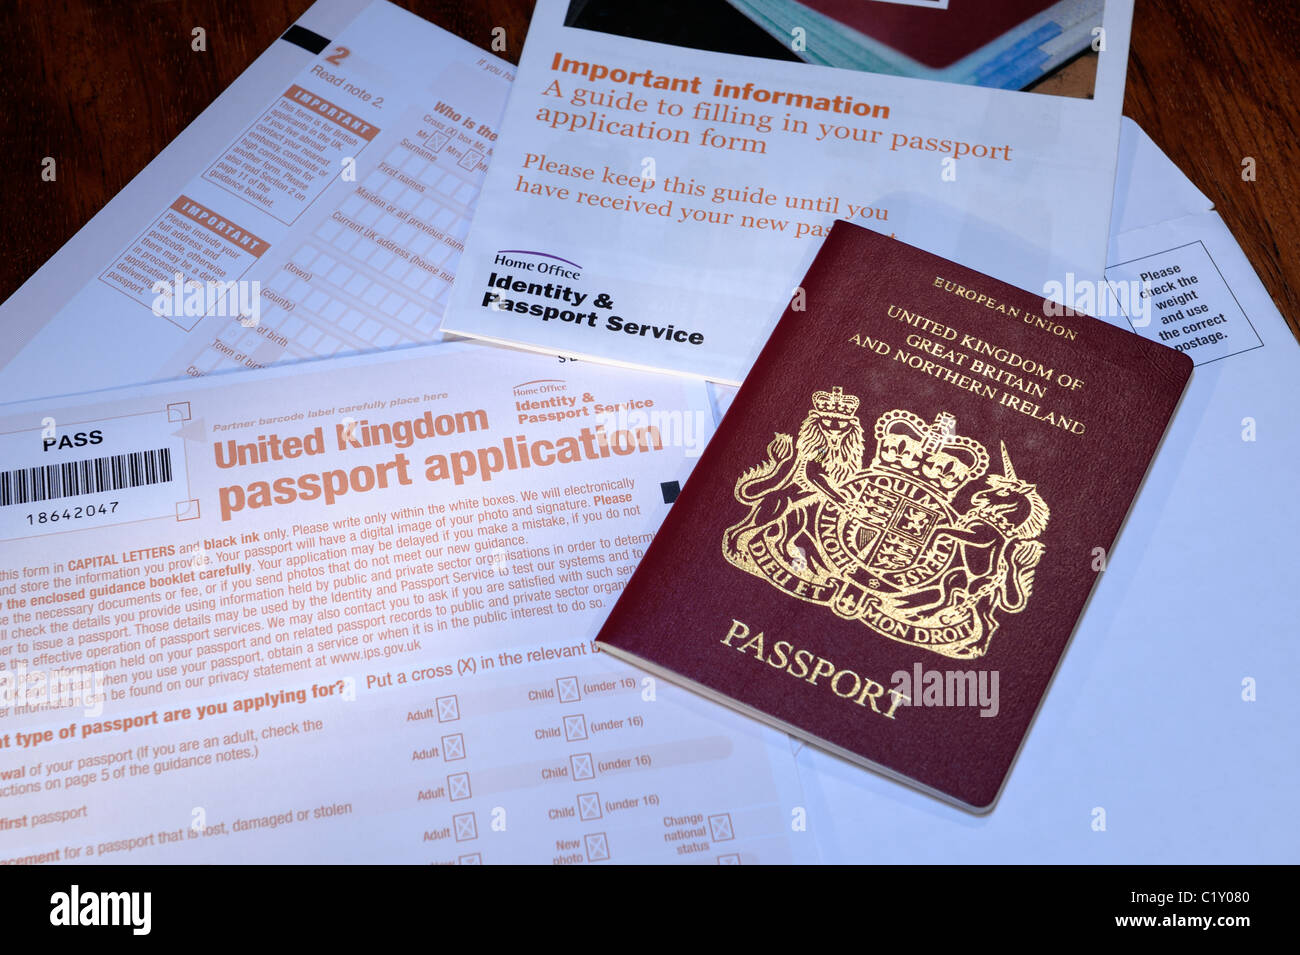 British Passport Application Form To Print, Uk Passport Application Form, British Passport Application Form To Print